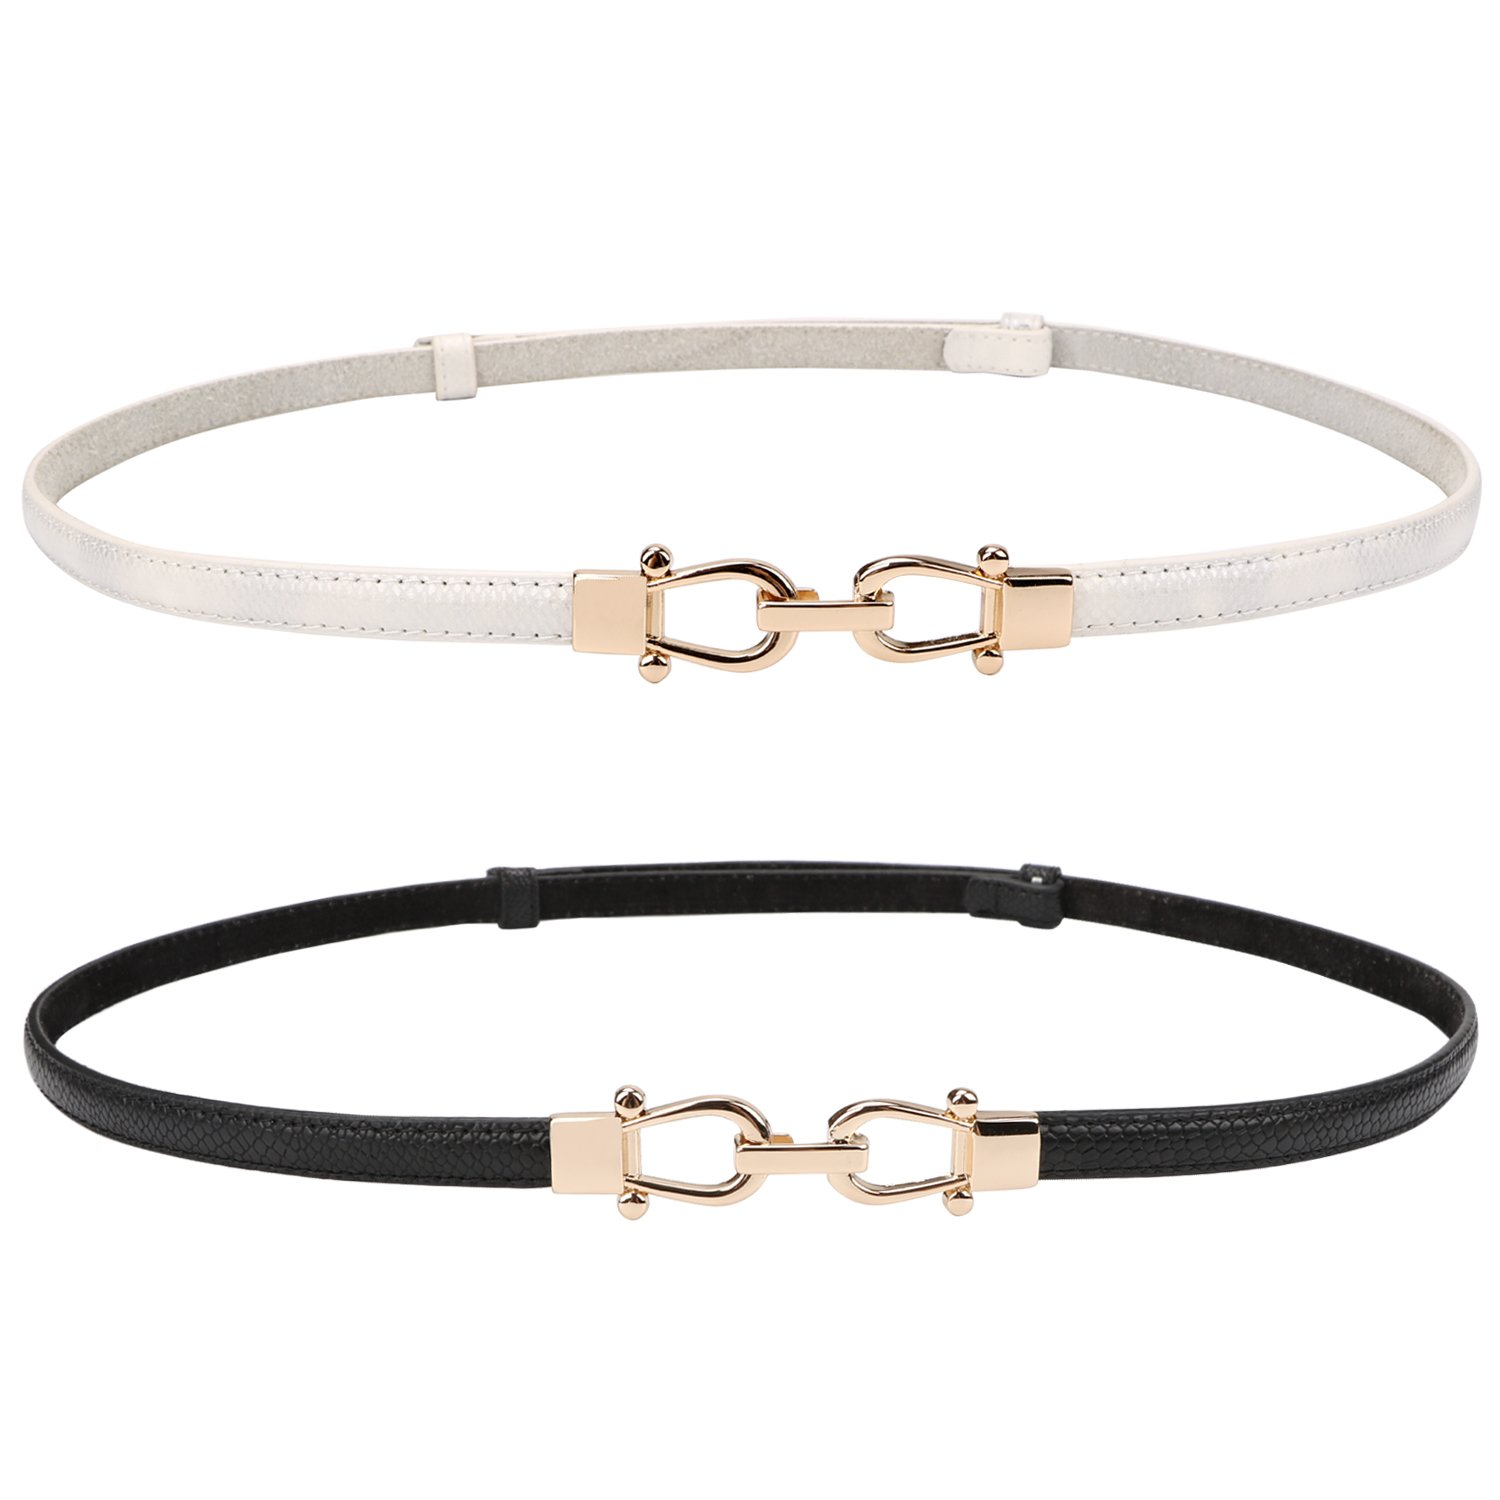 Genuine Leather Skinny Belt for Women Thin Waist Belts for Dresses Up to 33''with Interlocking Buckle 2 Pack